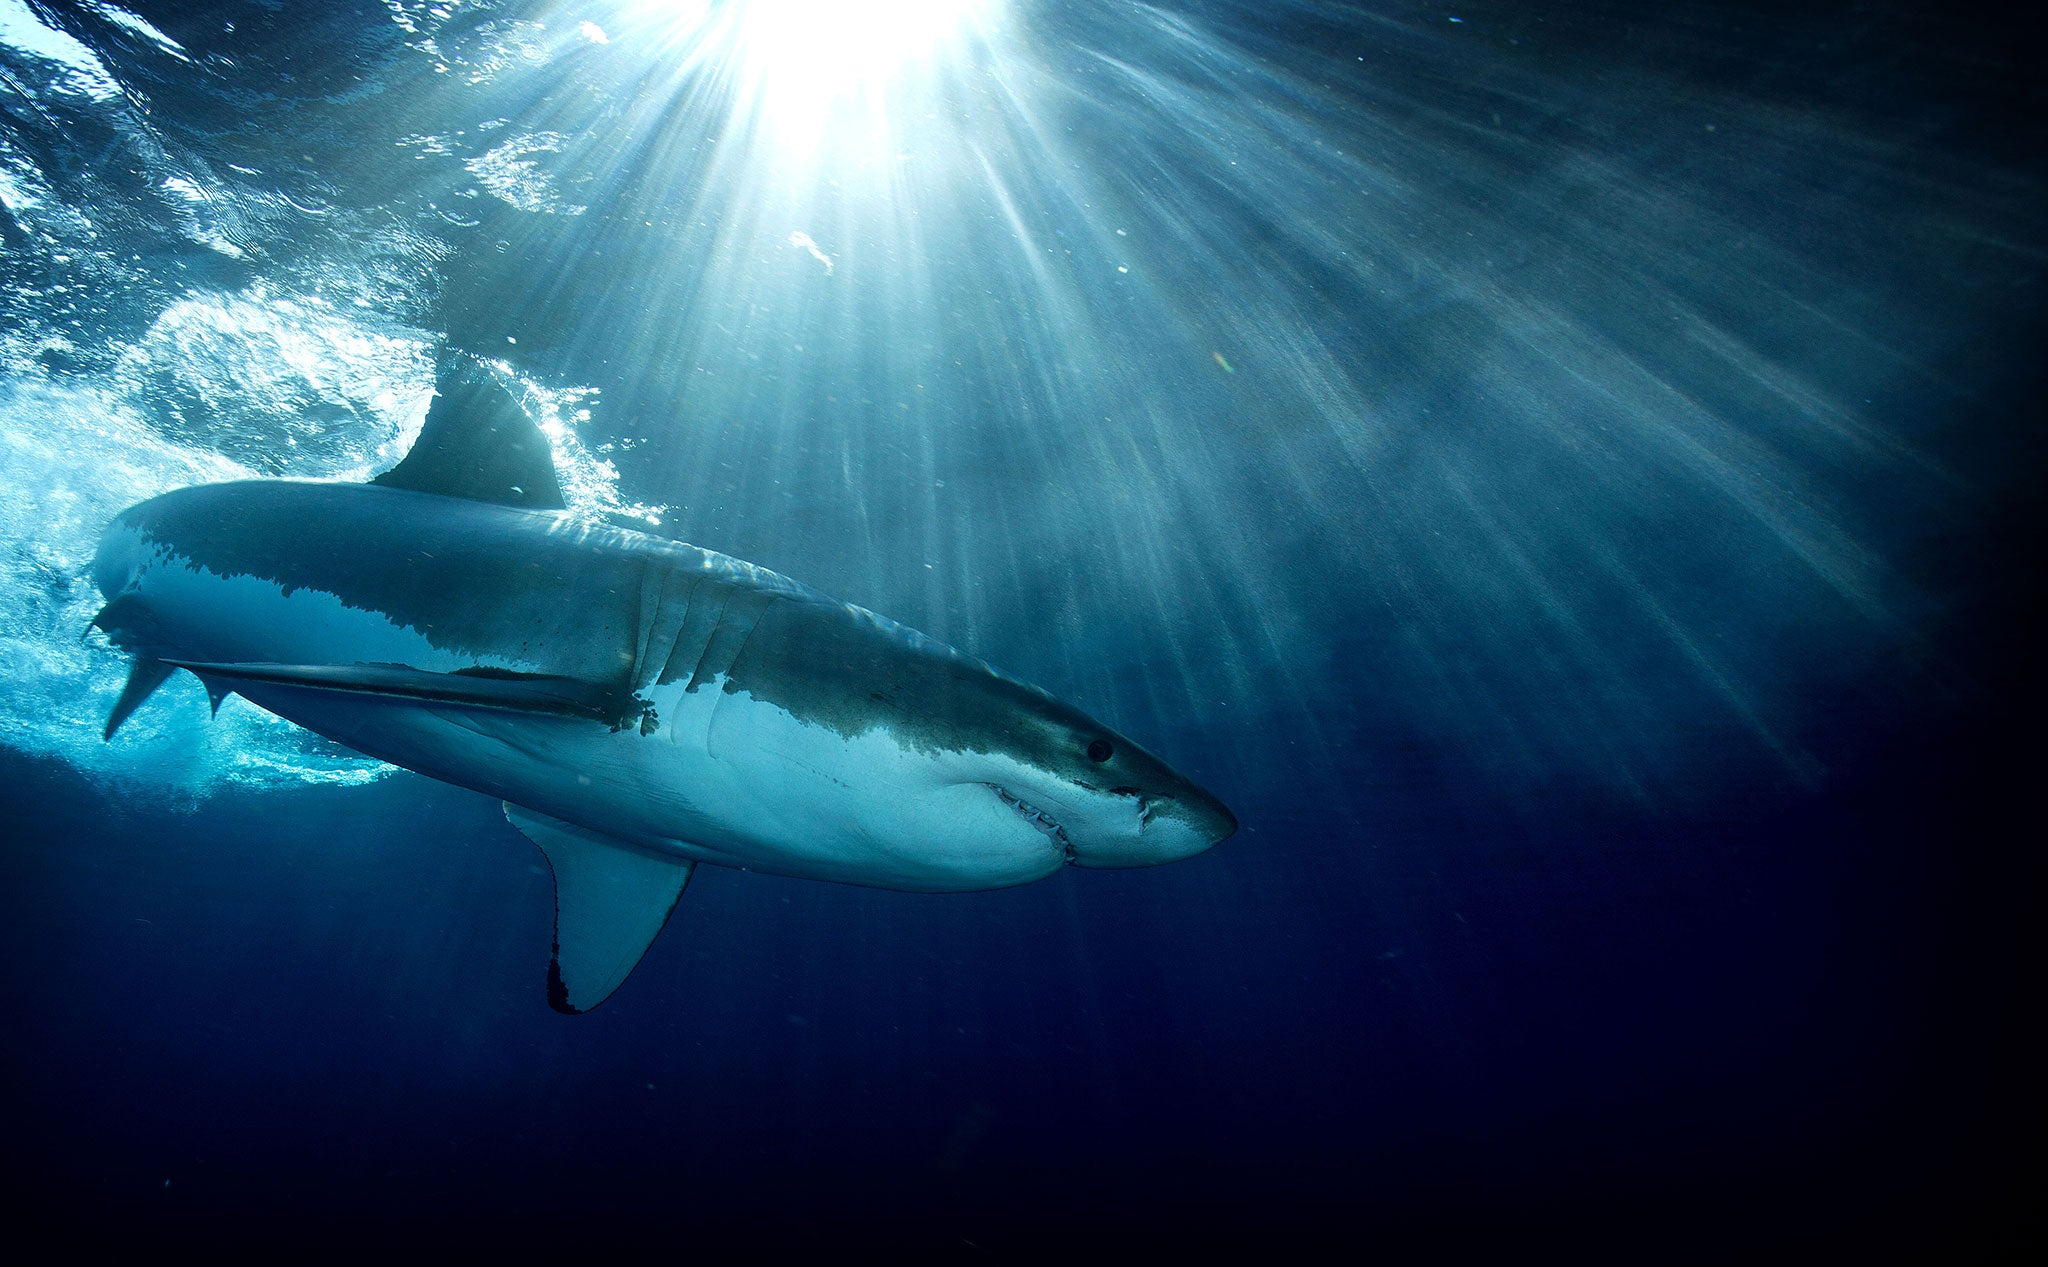 Shark attacks are increasing because we are invading their territory – no wonder they are becoming more aggressive